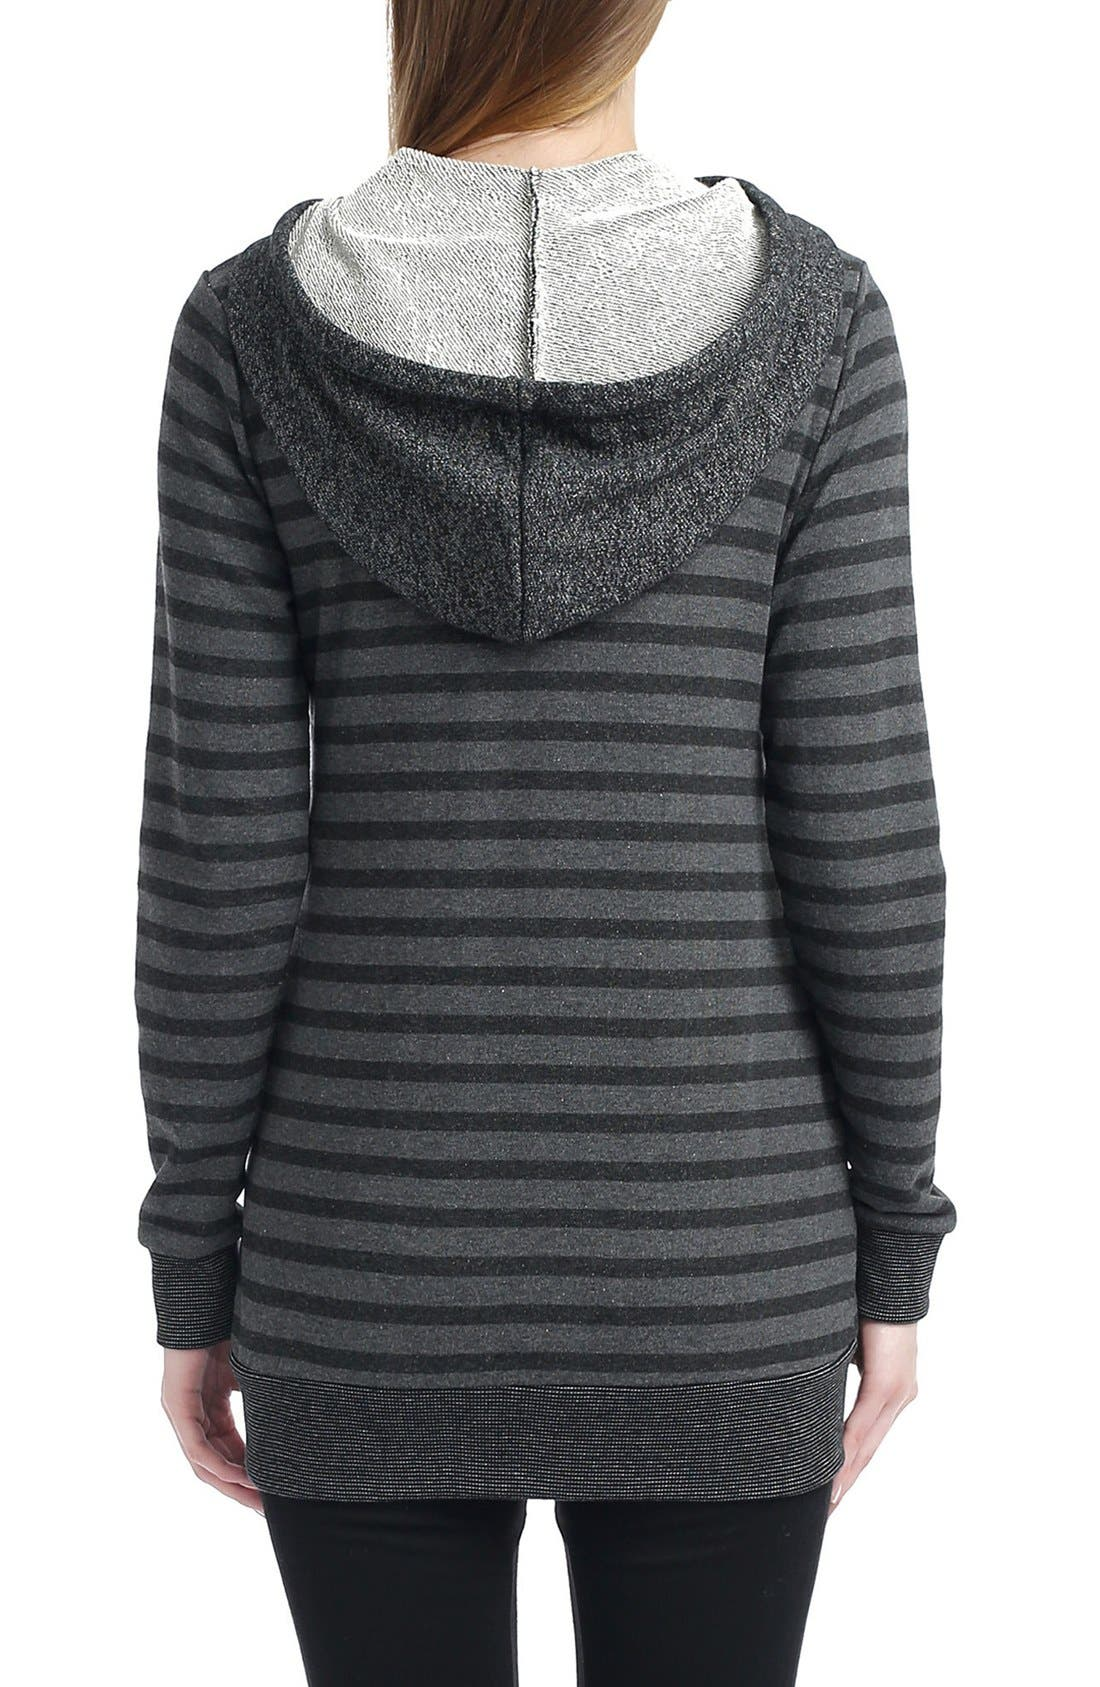 Salena Stripe Maternity Hoodie,                             Alternate thumbnail 2, color,                             Black/ Dark Heather Gray